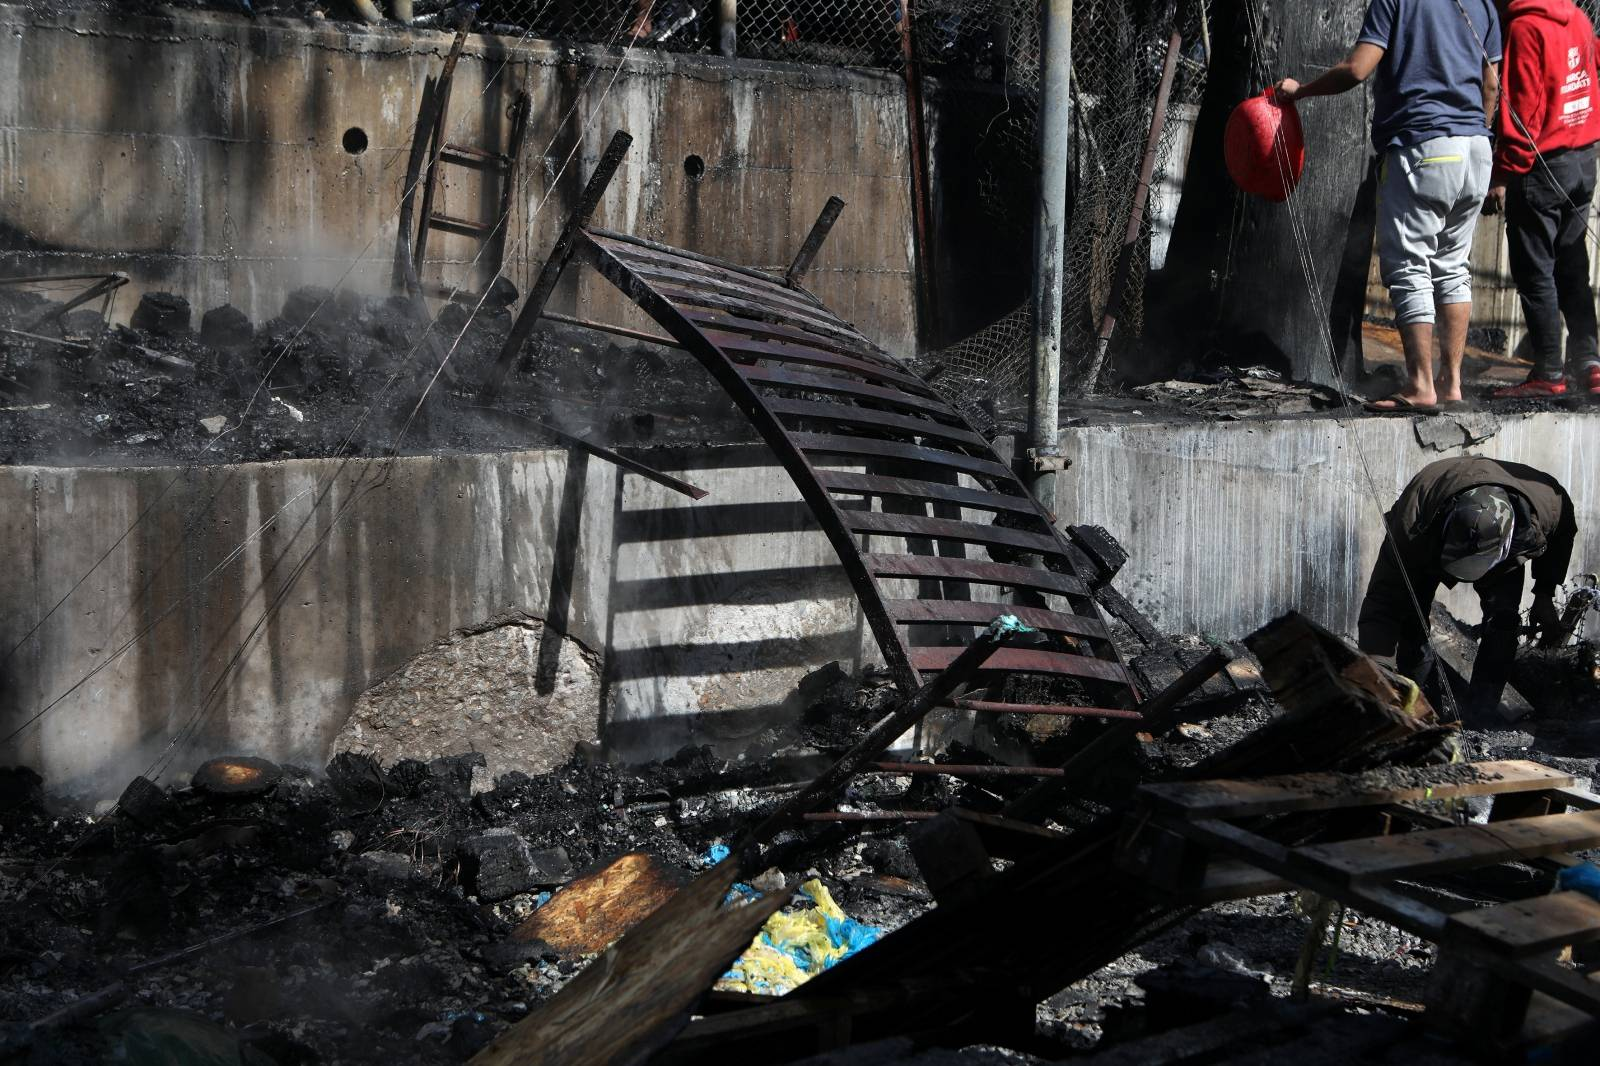 A burnt bed is seen following a fire in containers used to house refugees and migrants in the Moria camp on the island of Lesbos